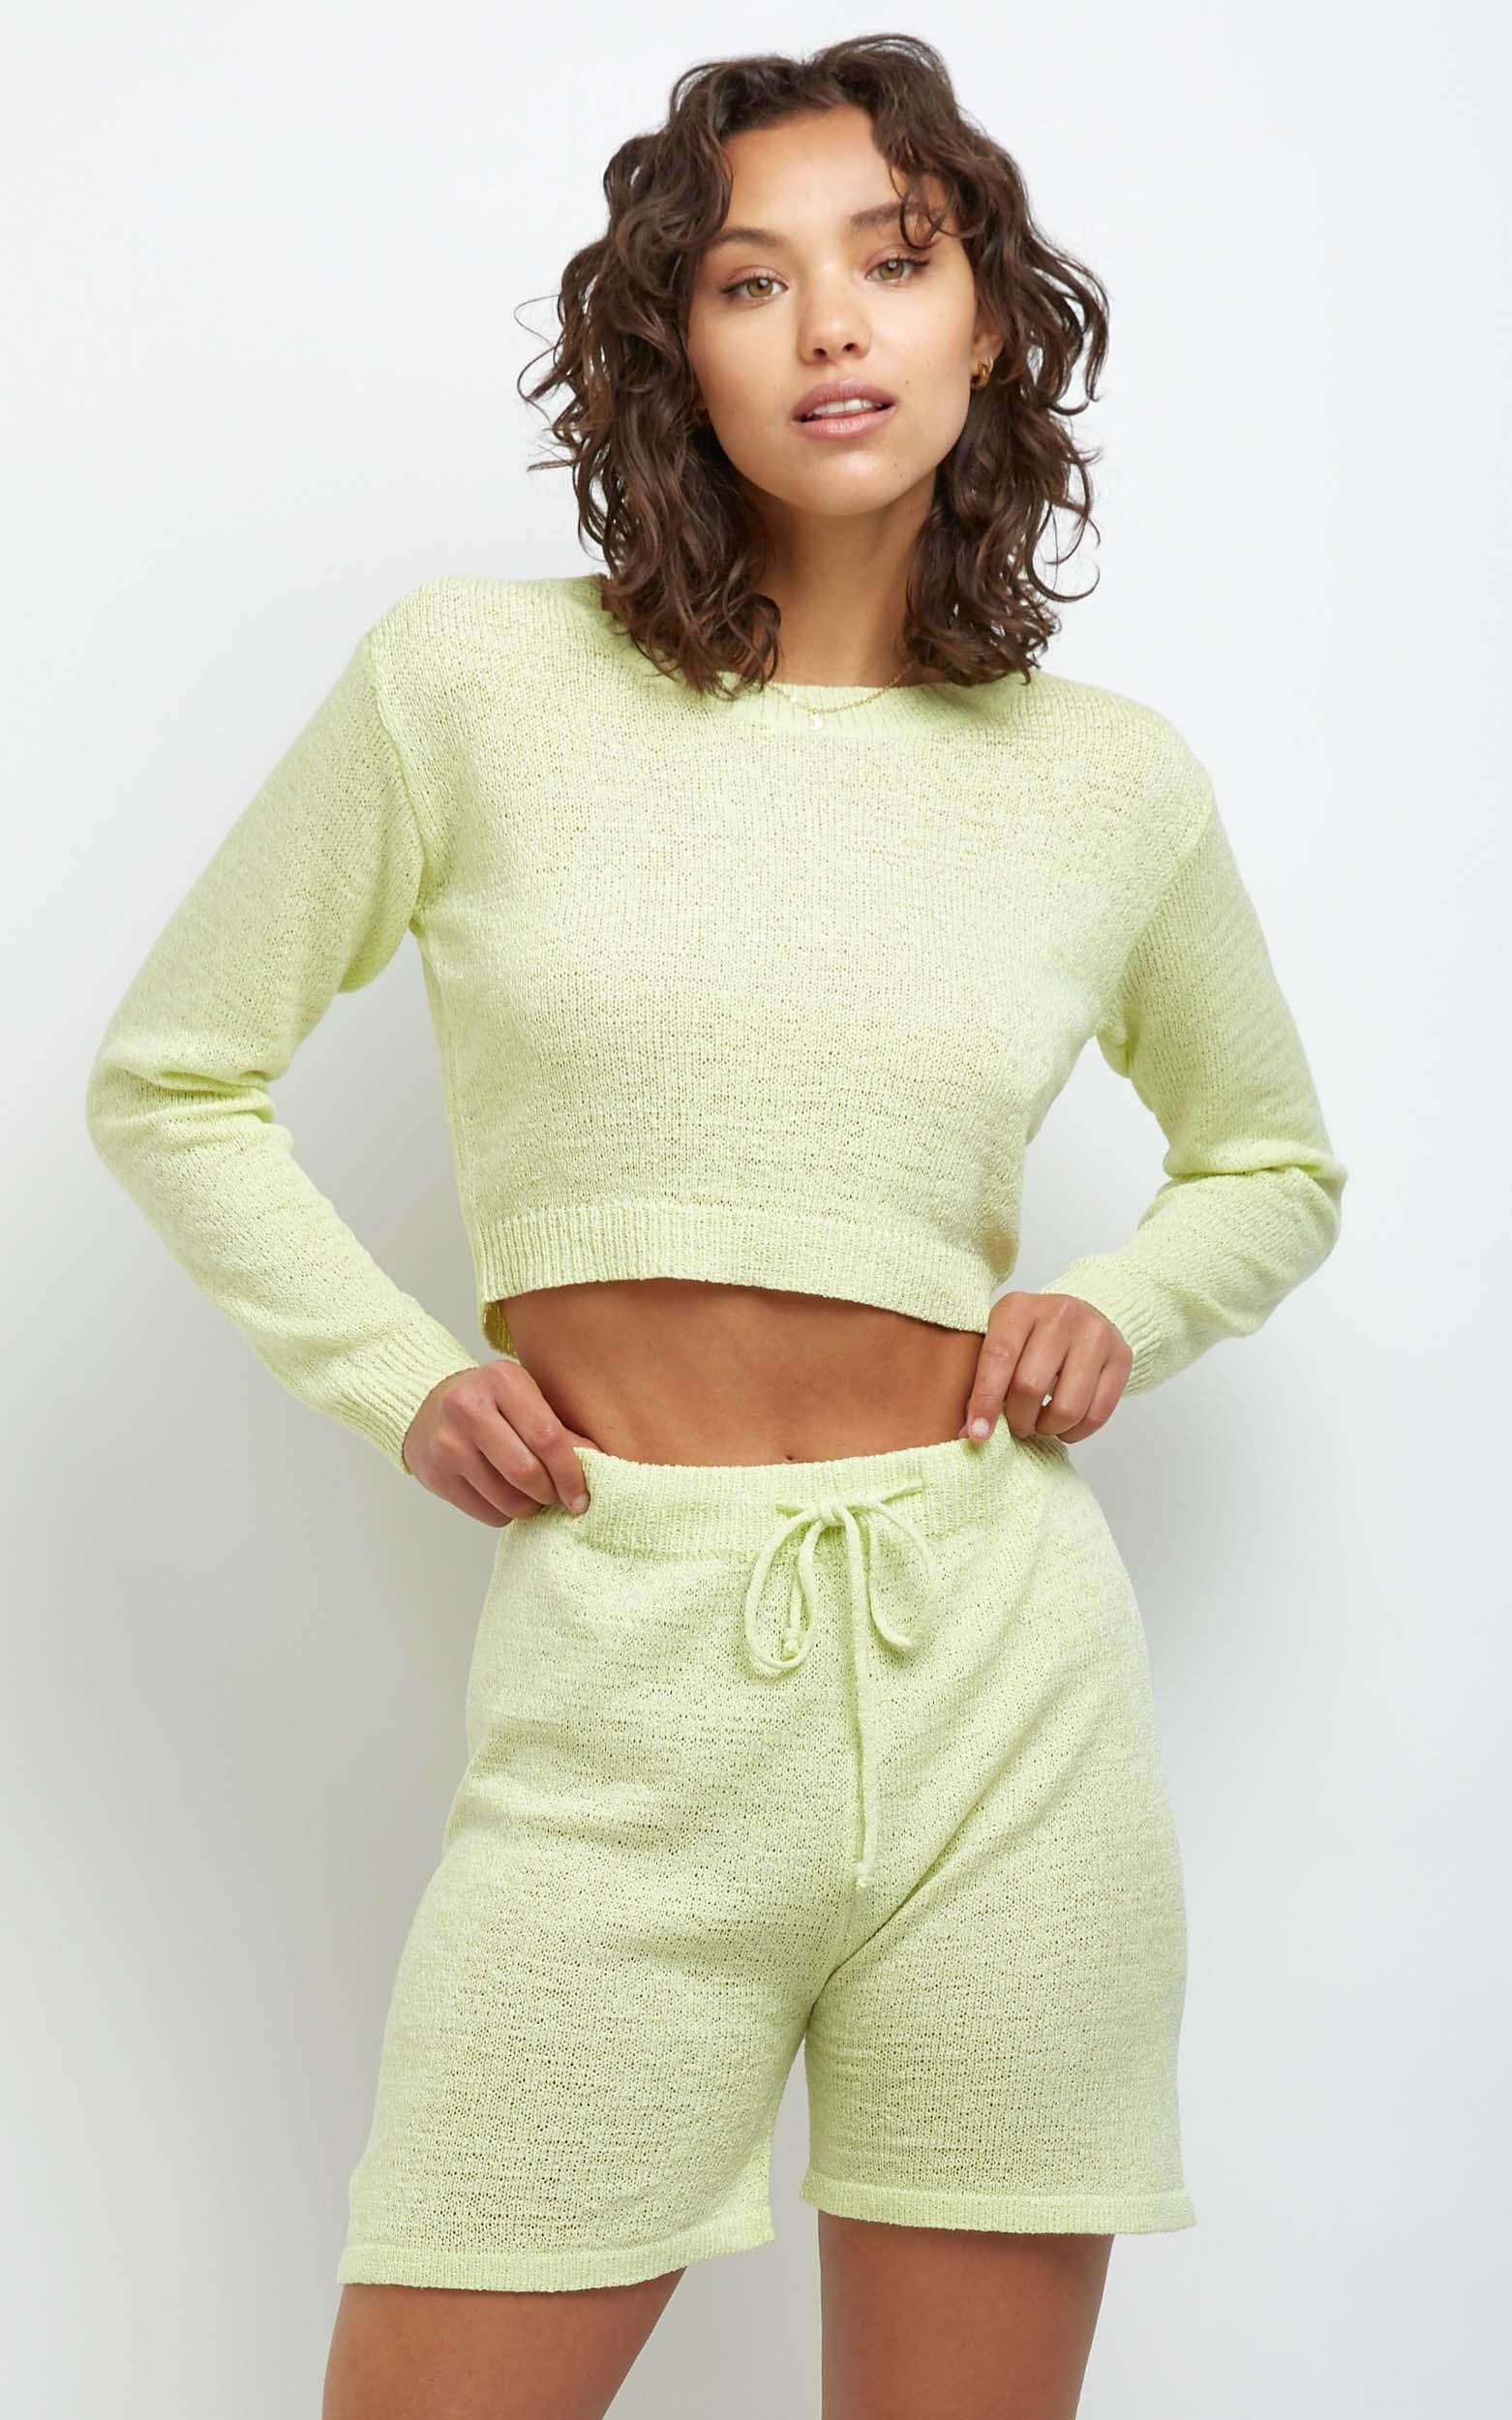 Dacia Knit Top in Yellow - L, Yellow, hi-res image number null